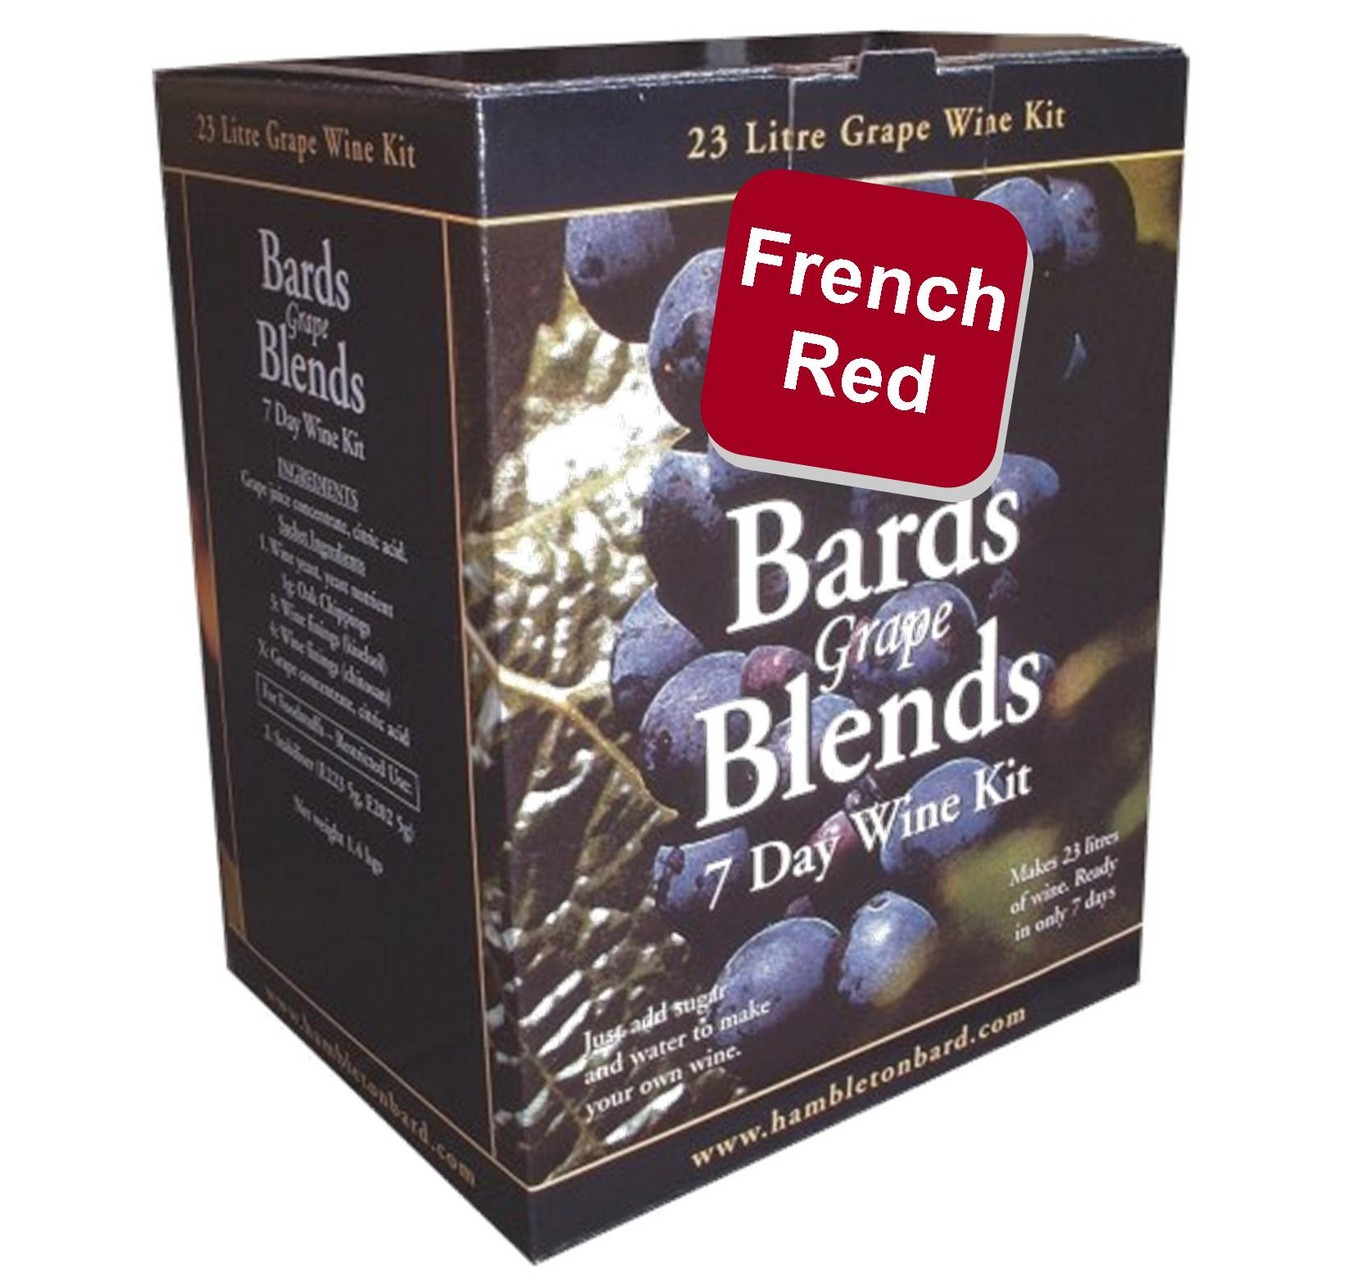 Bard's French Red Wine Kit